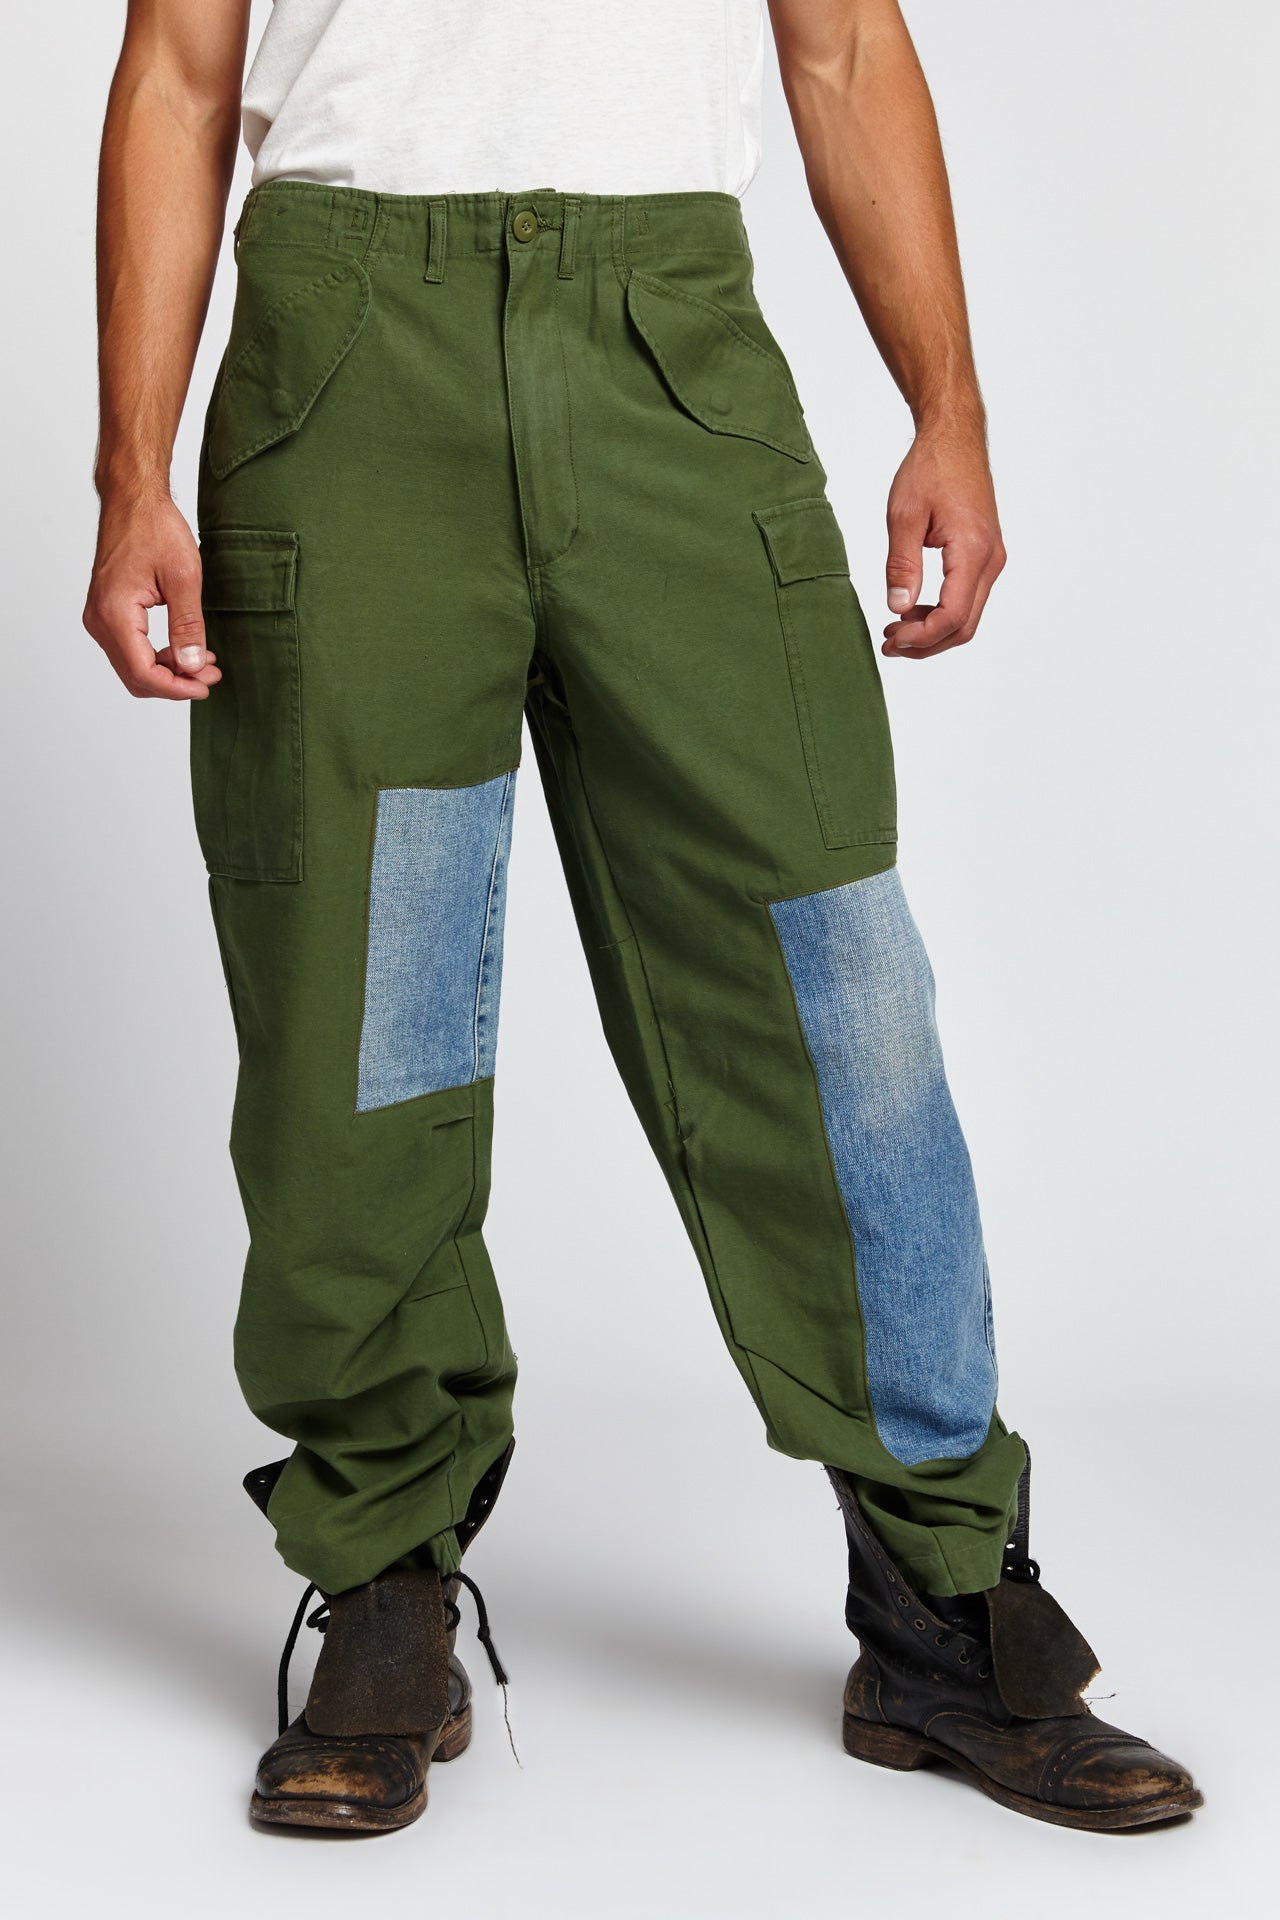 GREEN PATCHWORK CARGO CHINOS COTTON 34 W PANTS (Made to Order)-BOTTOMS-Mundane Official-34-GREEN-Mundane Official